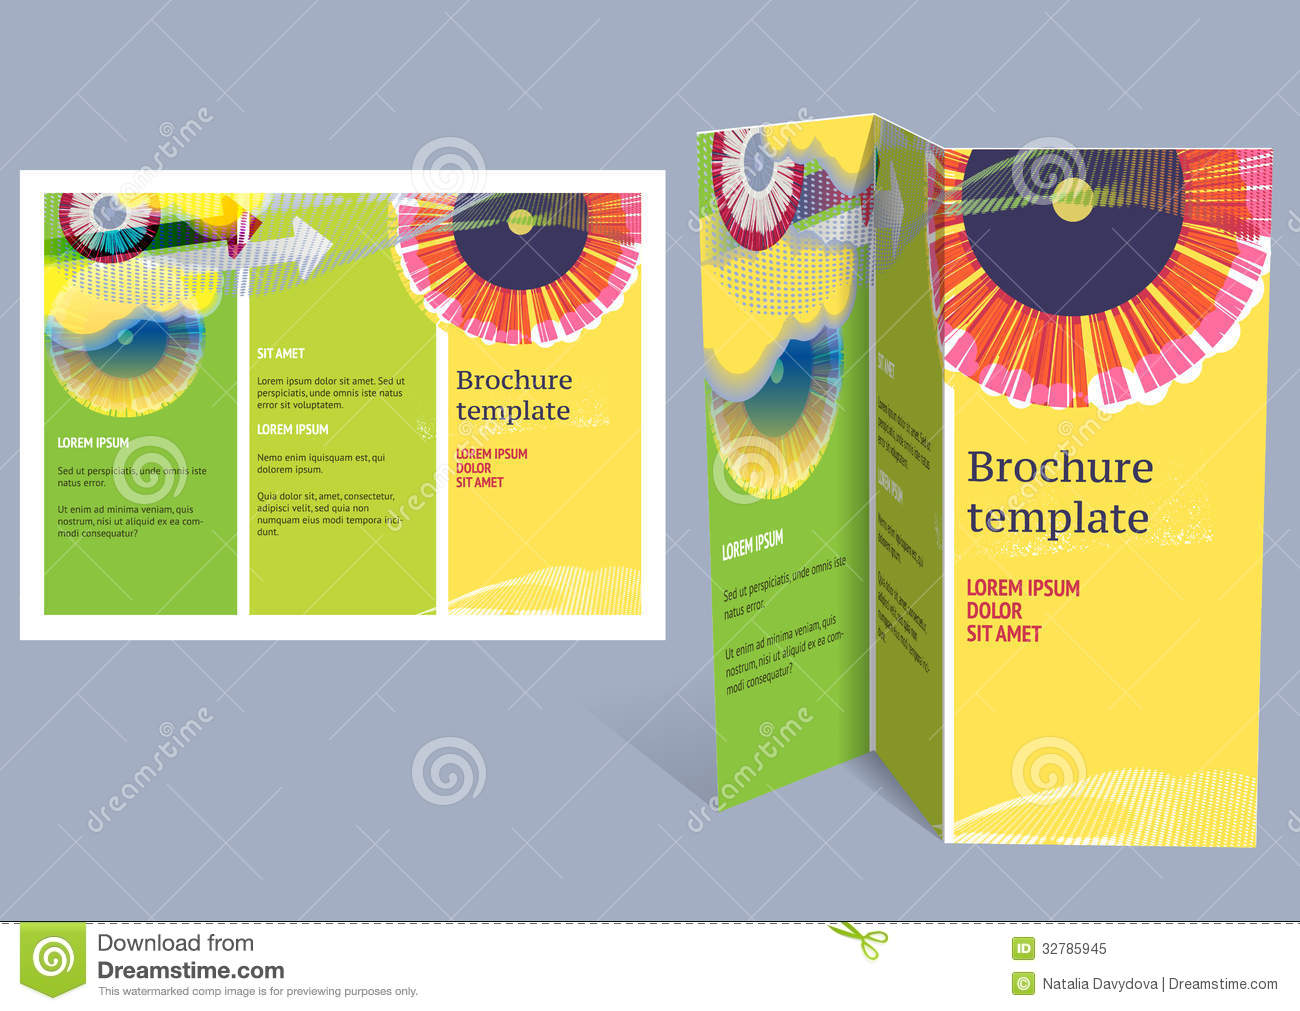 free brochures templates - brochure booklet z fold layout editable design t stock